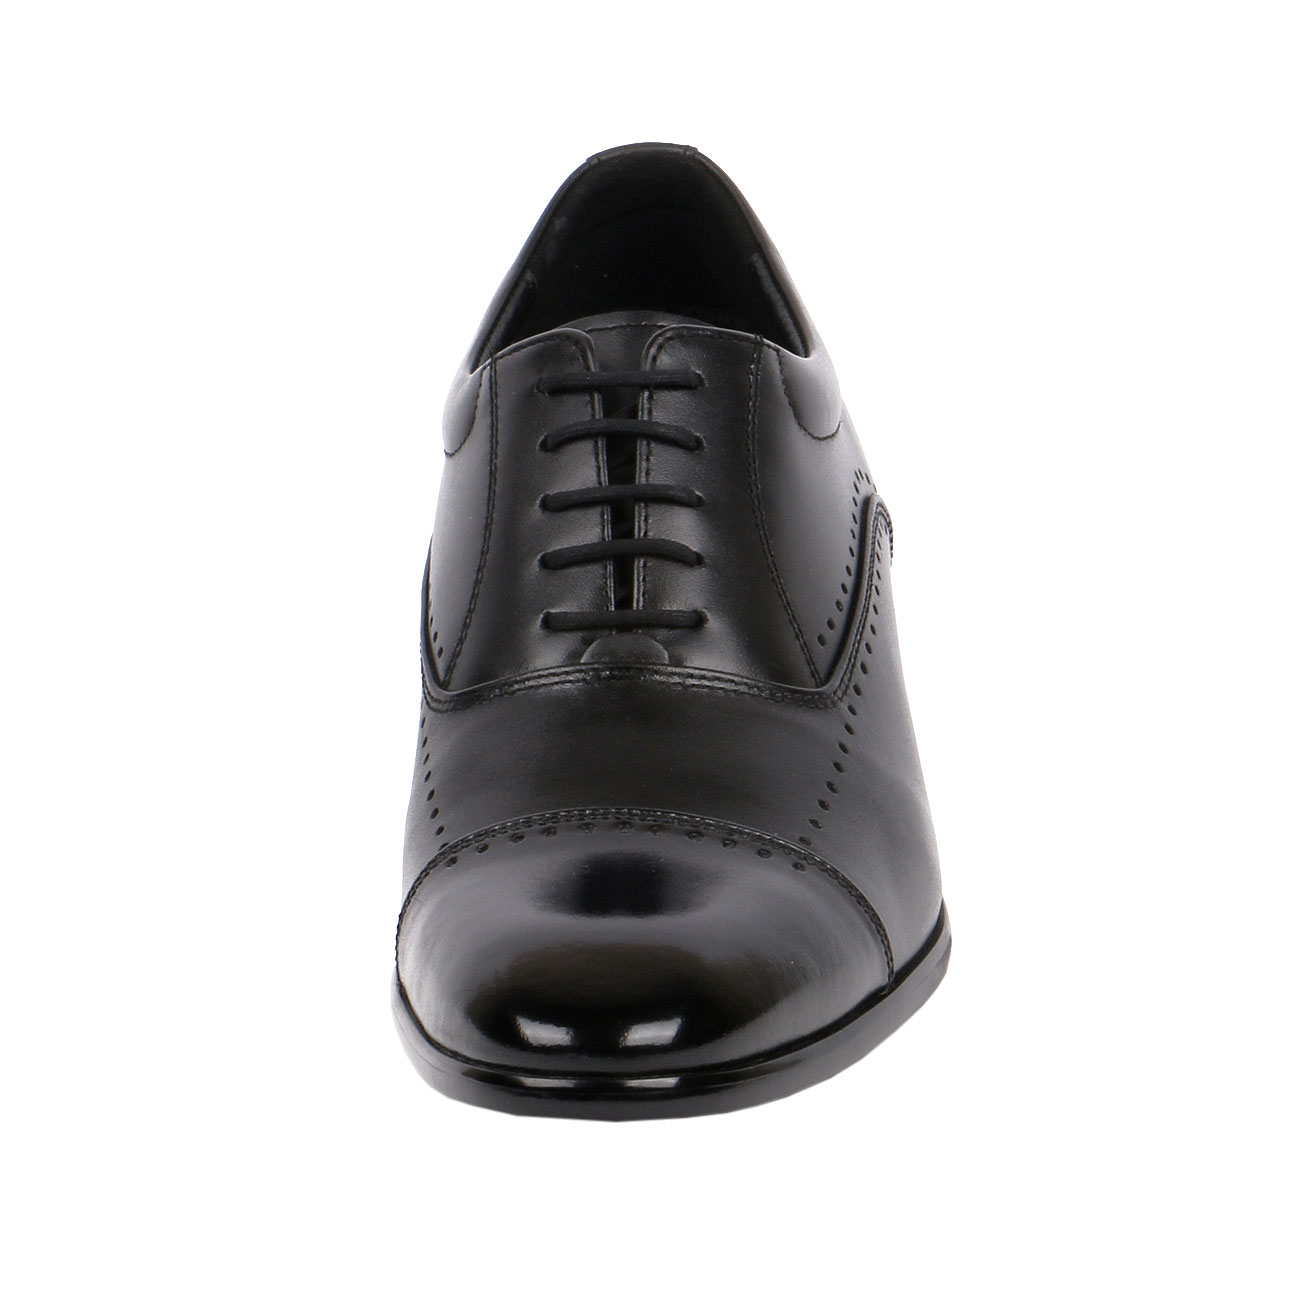 JW505 Limited Version Classic Cap-Toe Oxford Shoe Suiting Up For A Board Meeting or A Formal Event-2